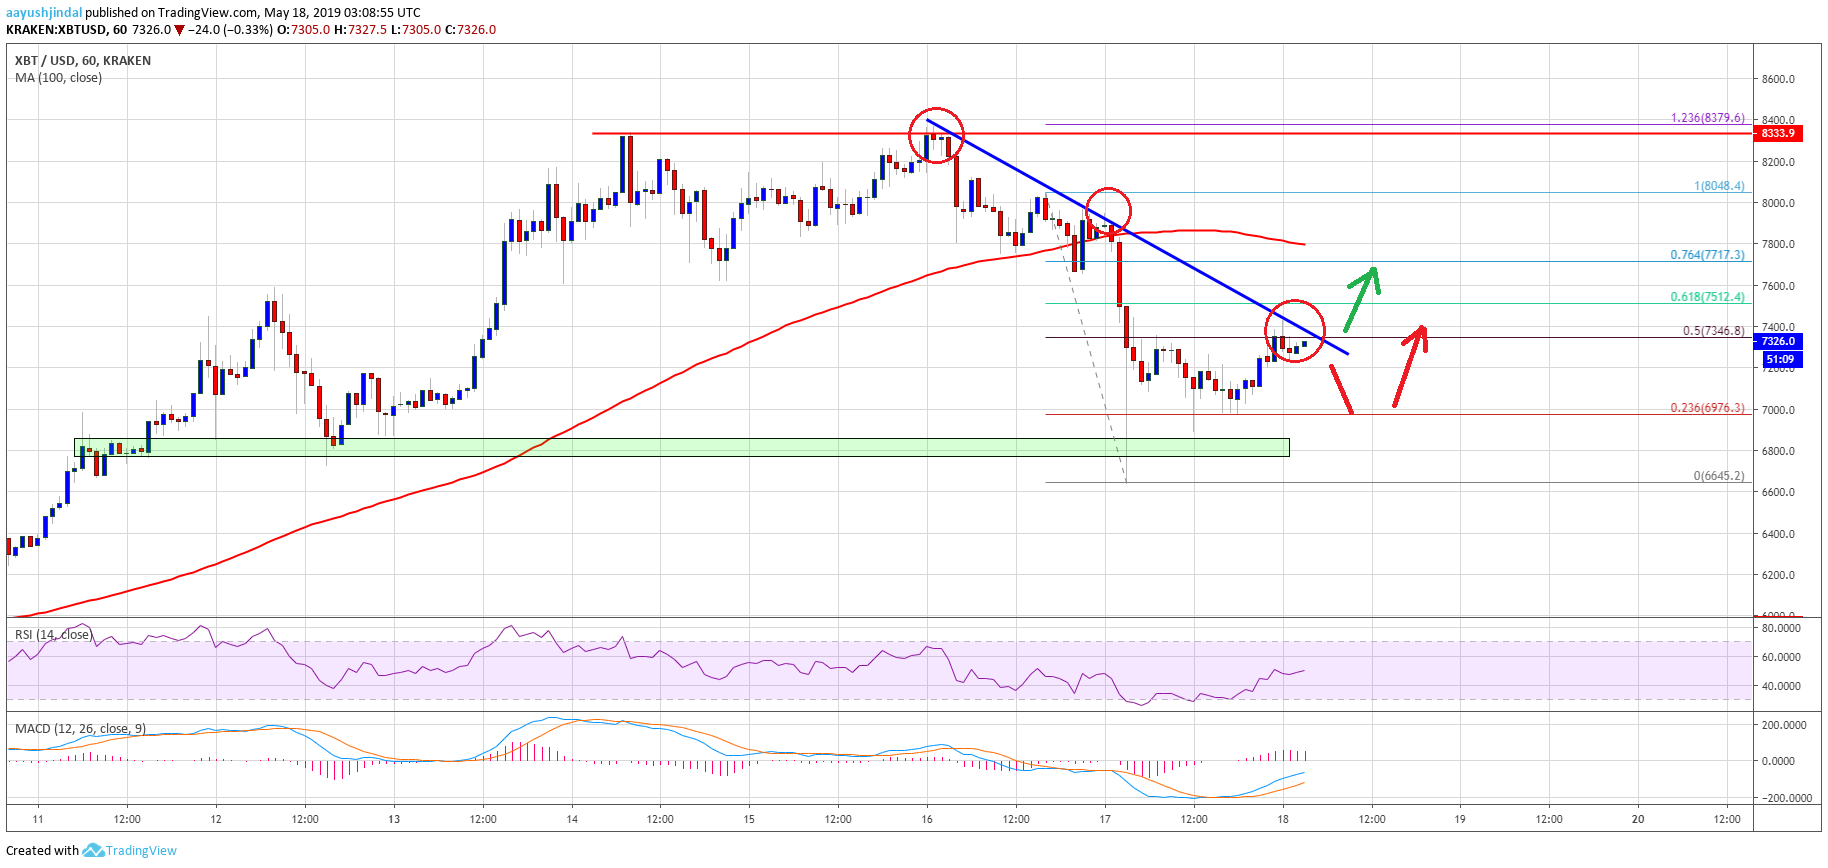 Bitcoin (BTC) Price Near Inflection Point -  Fresh Increase Likely